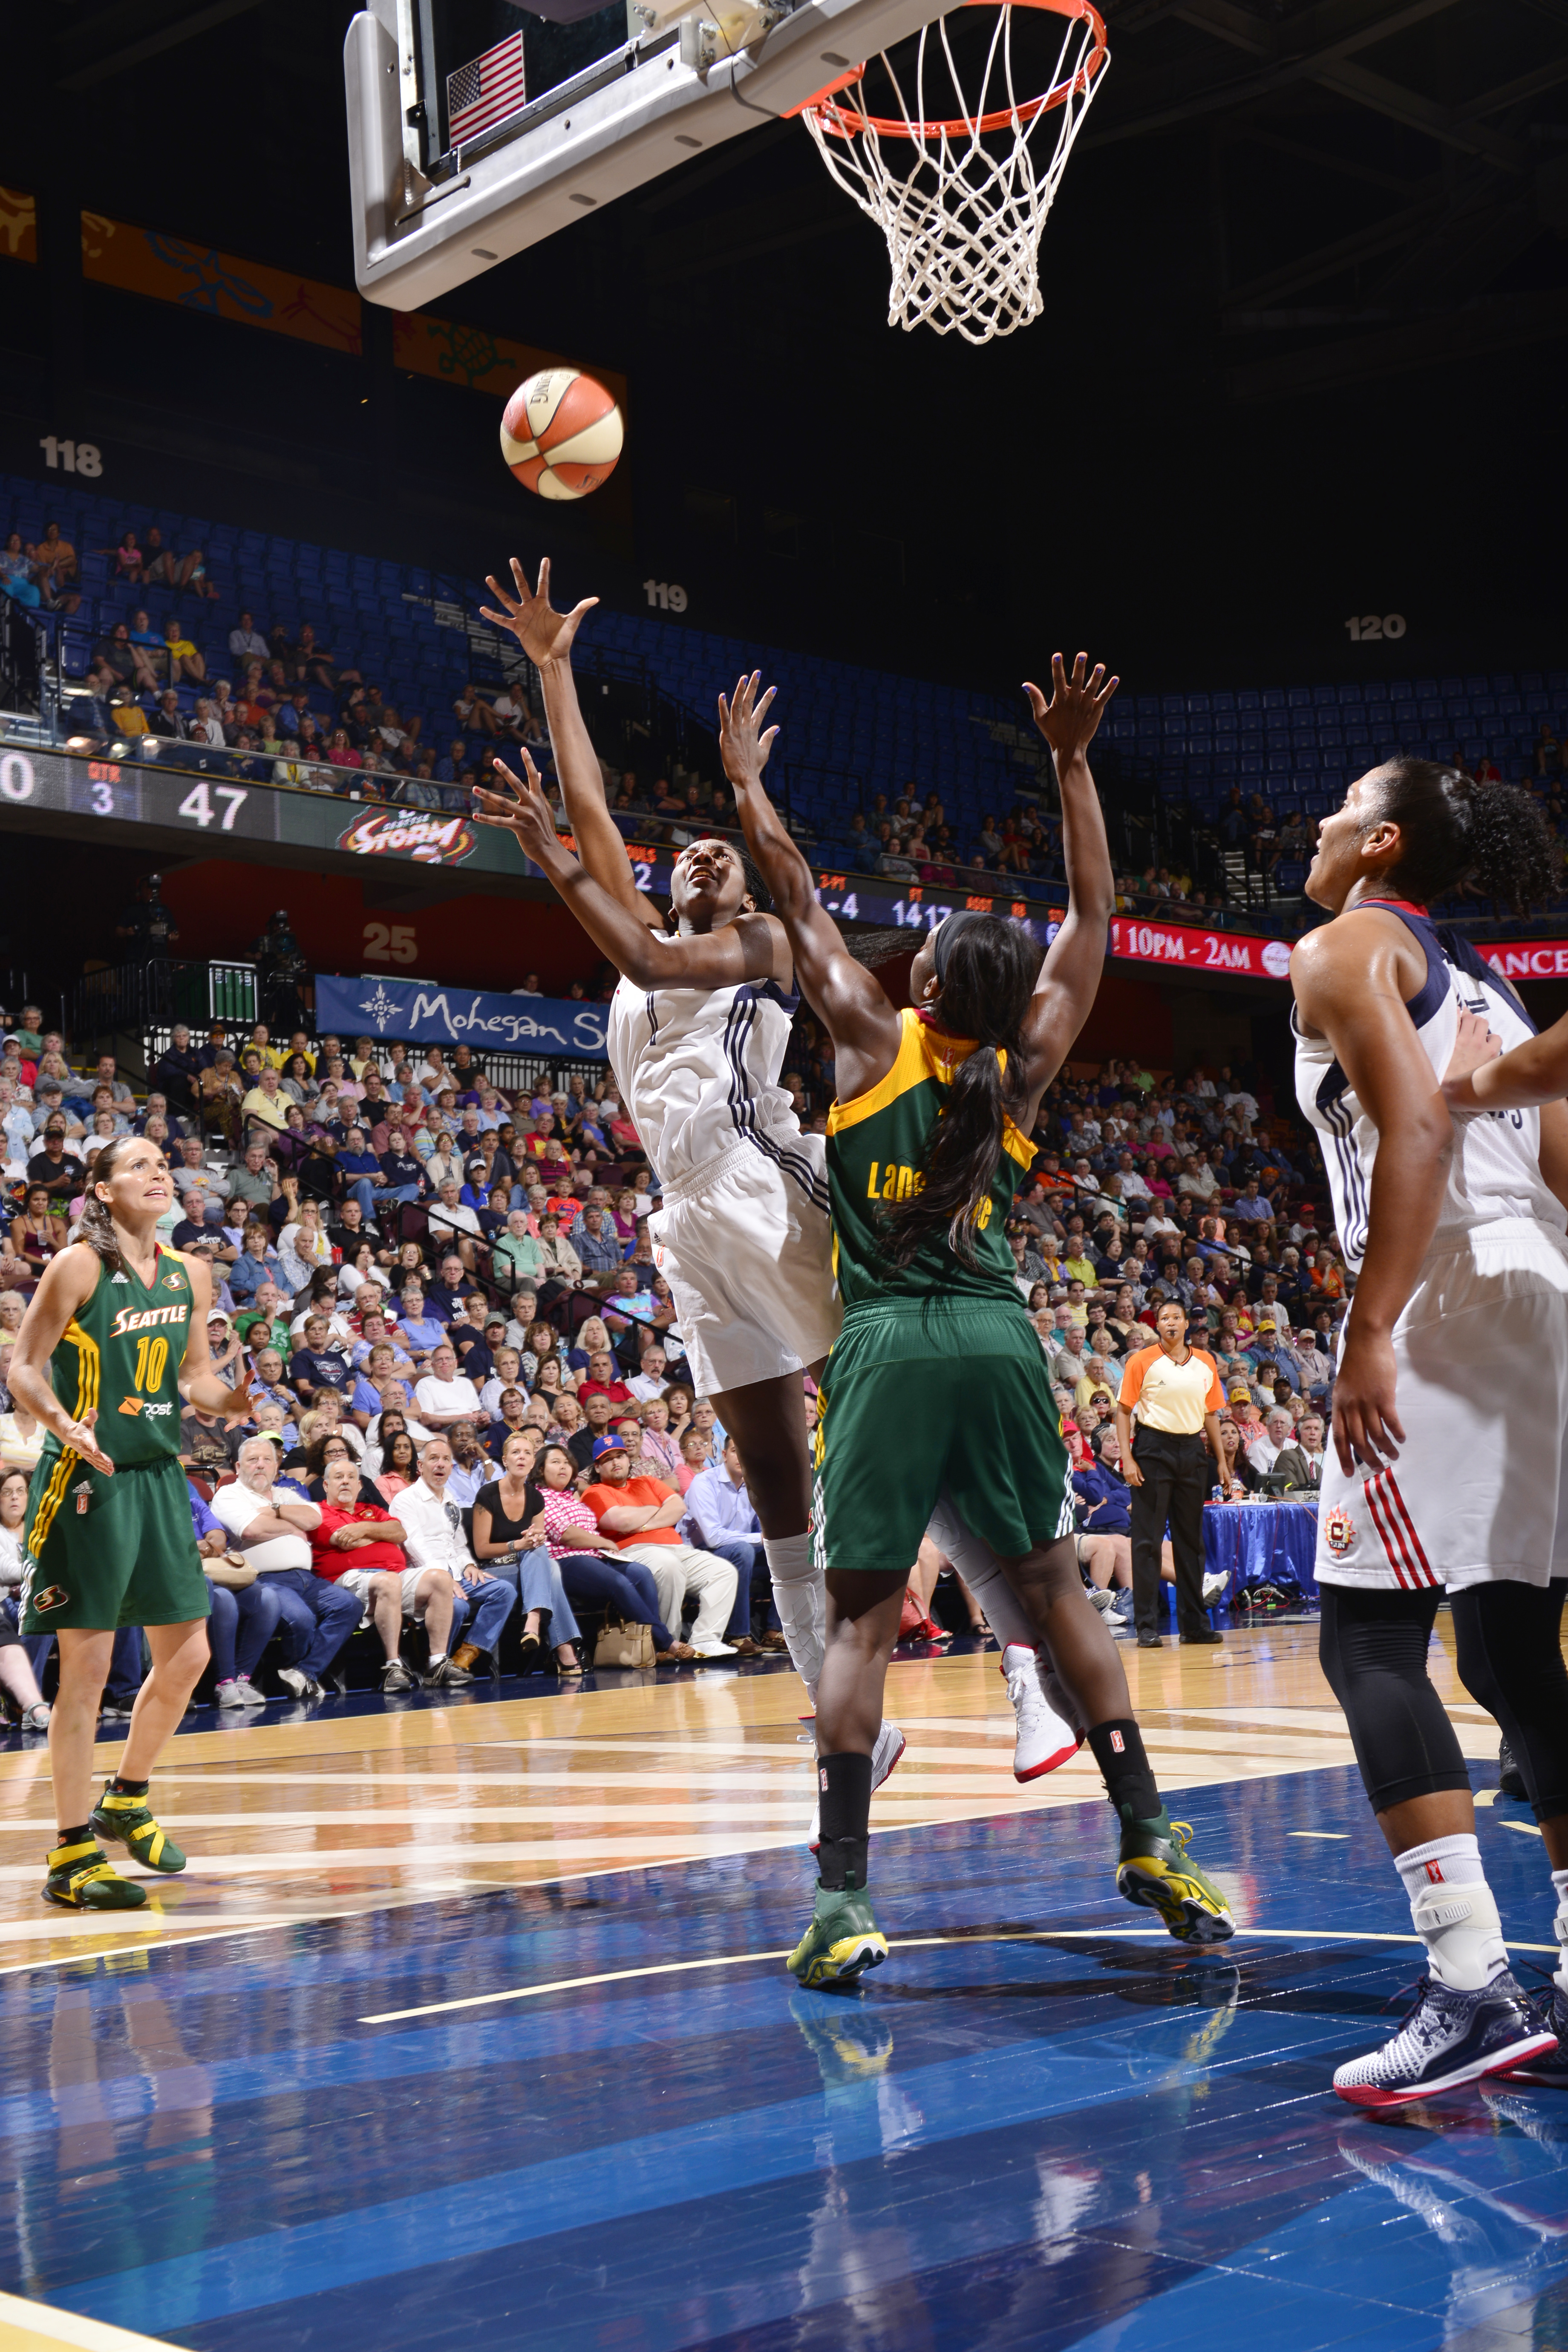 UNCASVILLE, CT - JULY 31:  Elizabeth Williams #1 of the Connecticut Sun shoots the ball against the Seattle Storm in a WNBA game on July 31, 2015 at the Mohegan Sun Arena in Uncasville, Connecticut. (Photo by David Dow/NBAE via Getty Images)